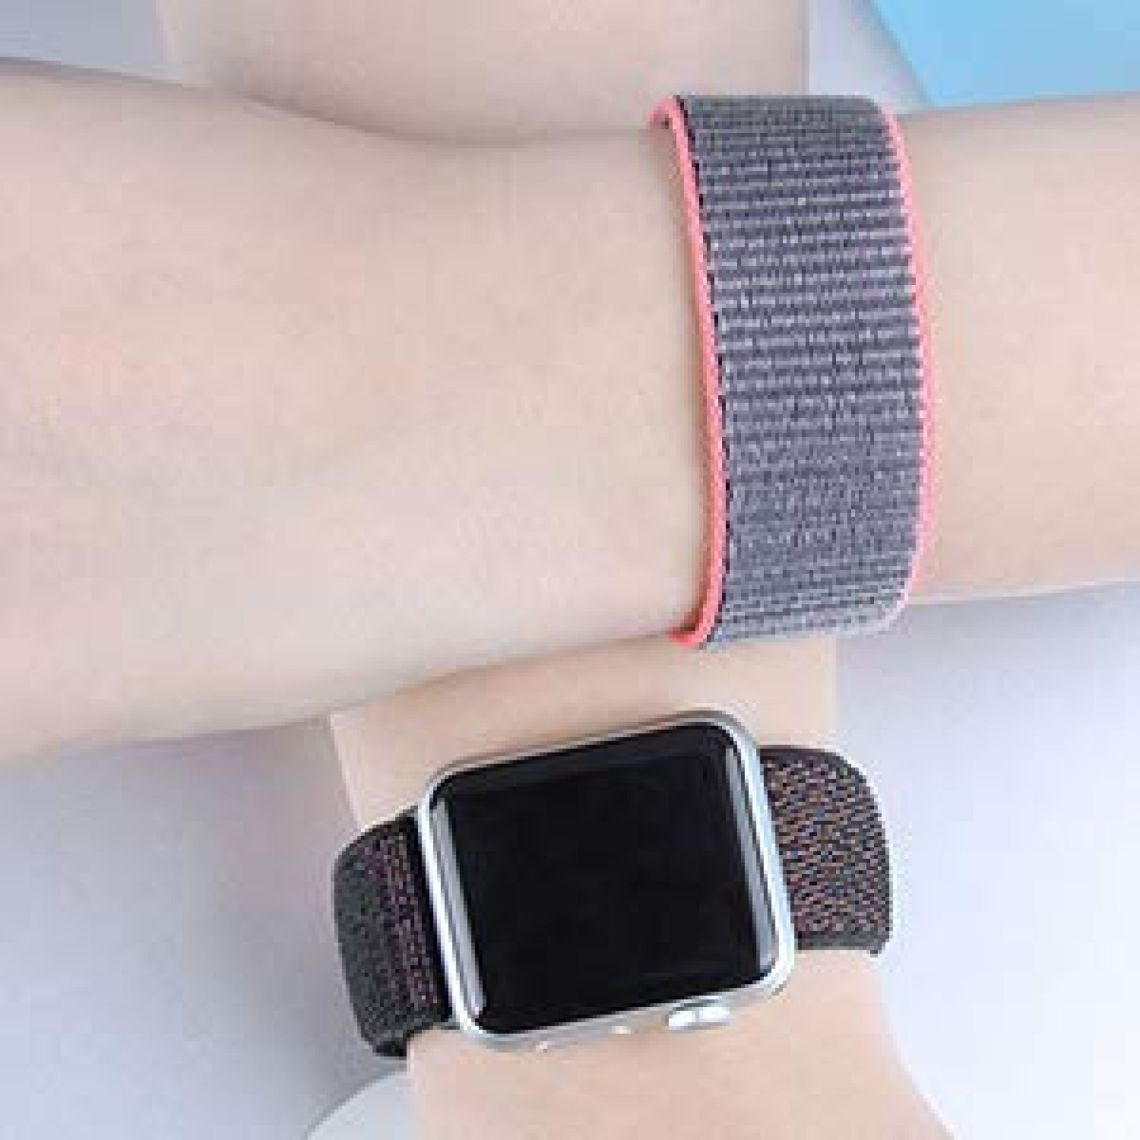 Amazon.com : For Apple Watch Band 38mm 42mm Soft Nylon Watch Sport Loop Band Adjustable Closure Wrist Strap Breathable Woven Nylon Replacement Strap for Apple Watch Series 3, 2, 1 : Sports & Outdoors